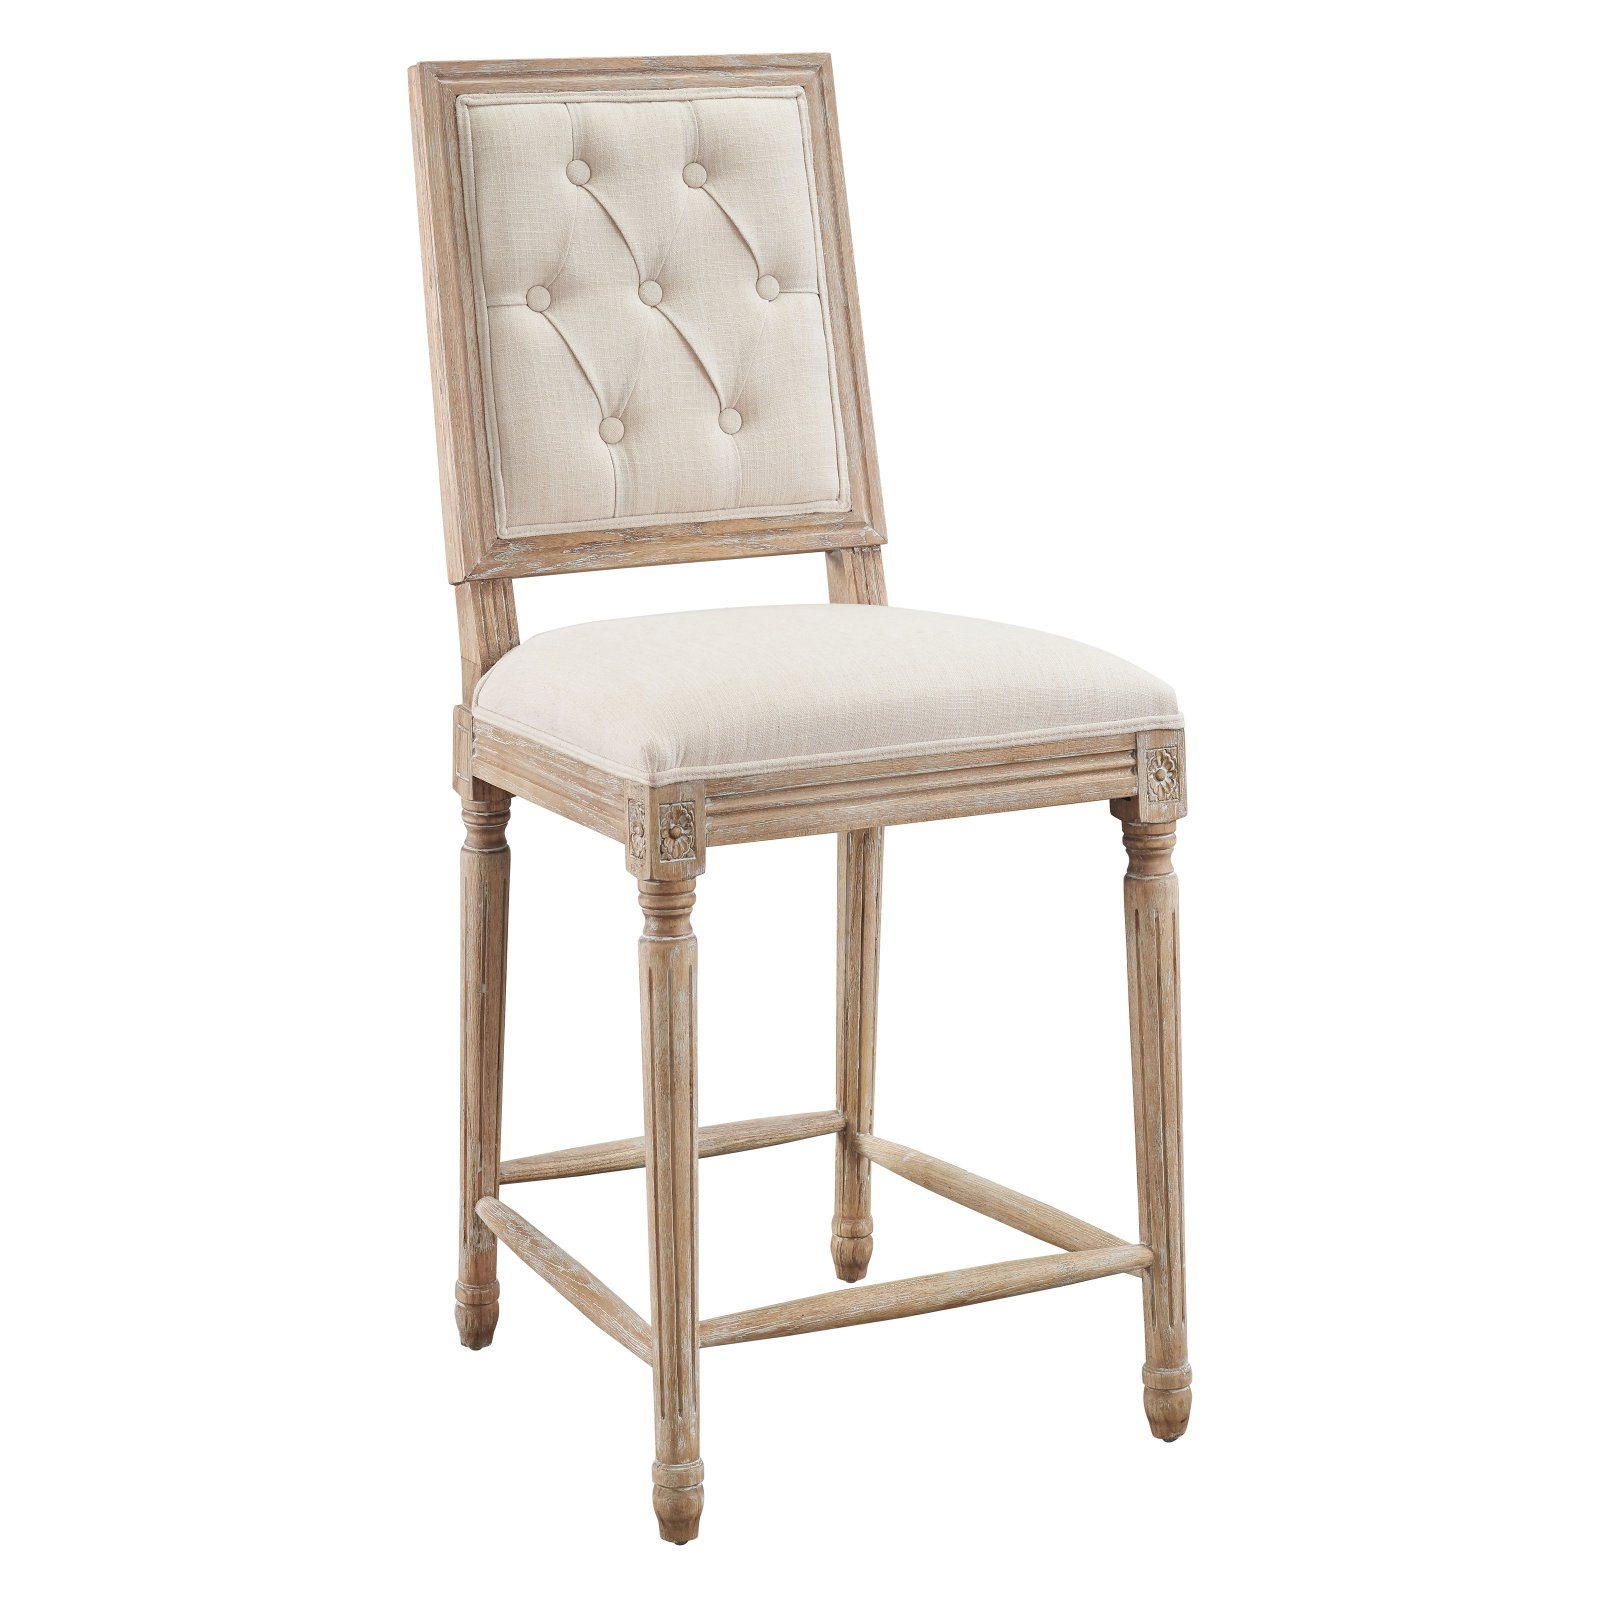 Linon Avalon Tufted Counter Stool Brown 25 Inch Seat Height